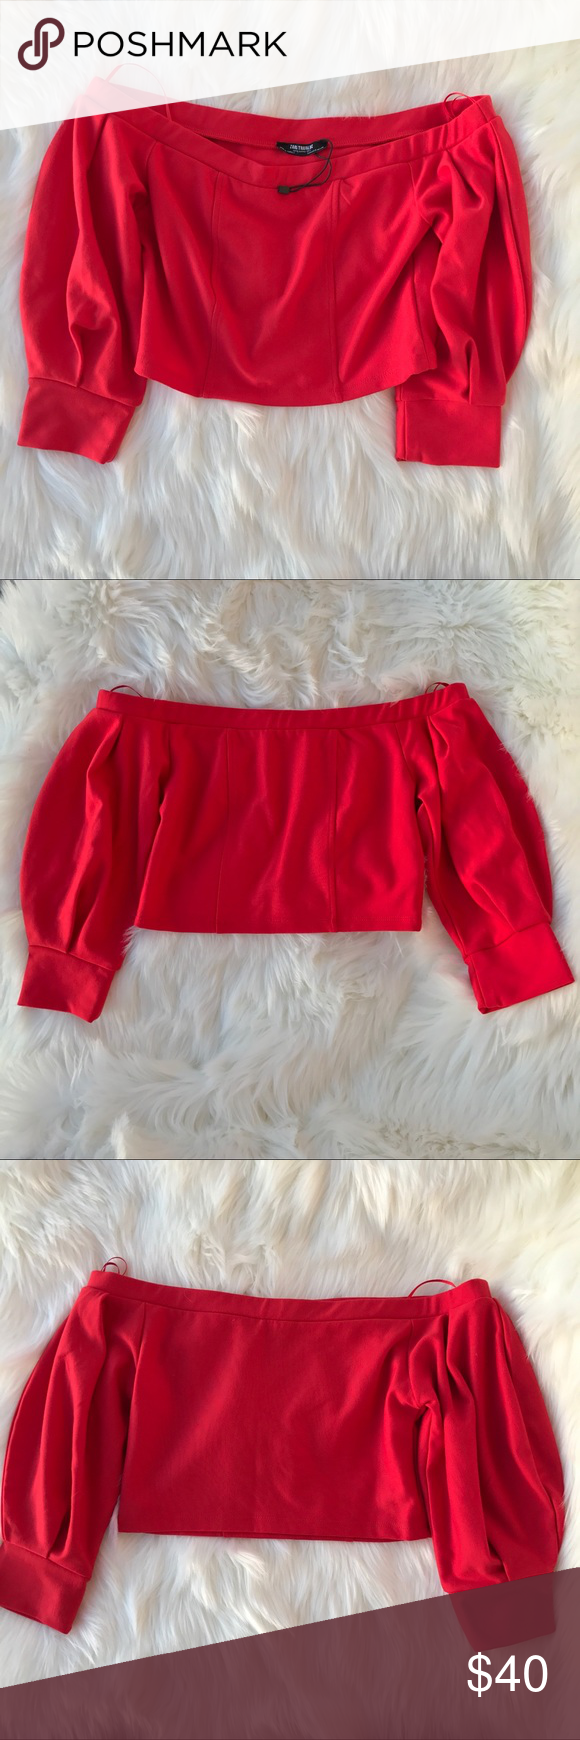 4c76e0d98d7 Zara Off The Shoulder cropped top Brand New without tag. Never worn. No  flaws. Size Small ❌ No trades ‼️Shipping: It might take 6 days or more.